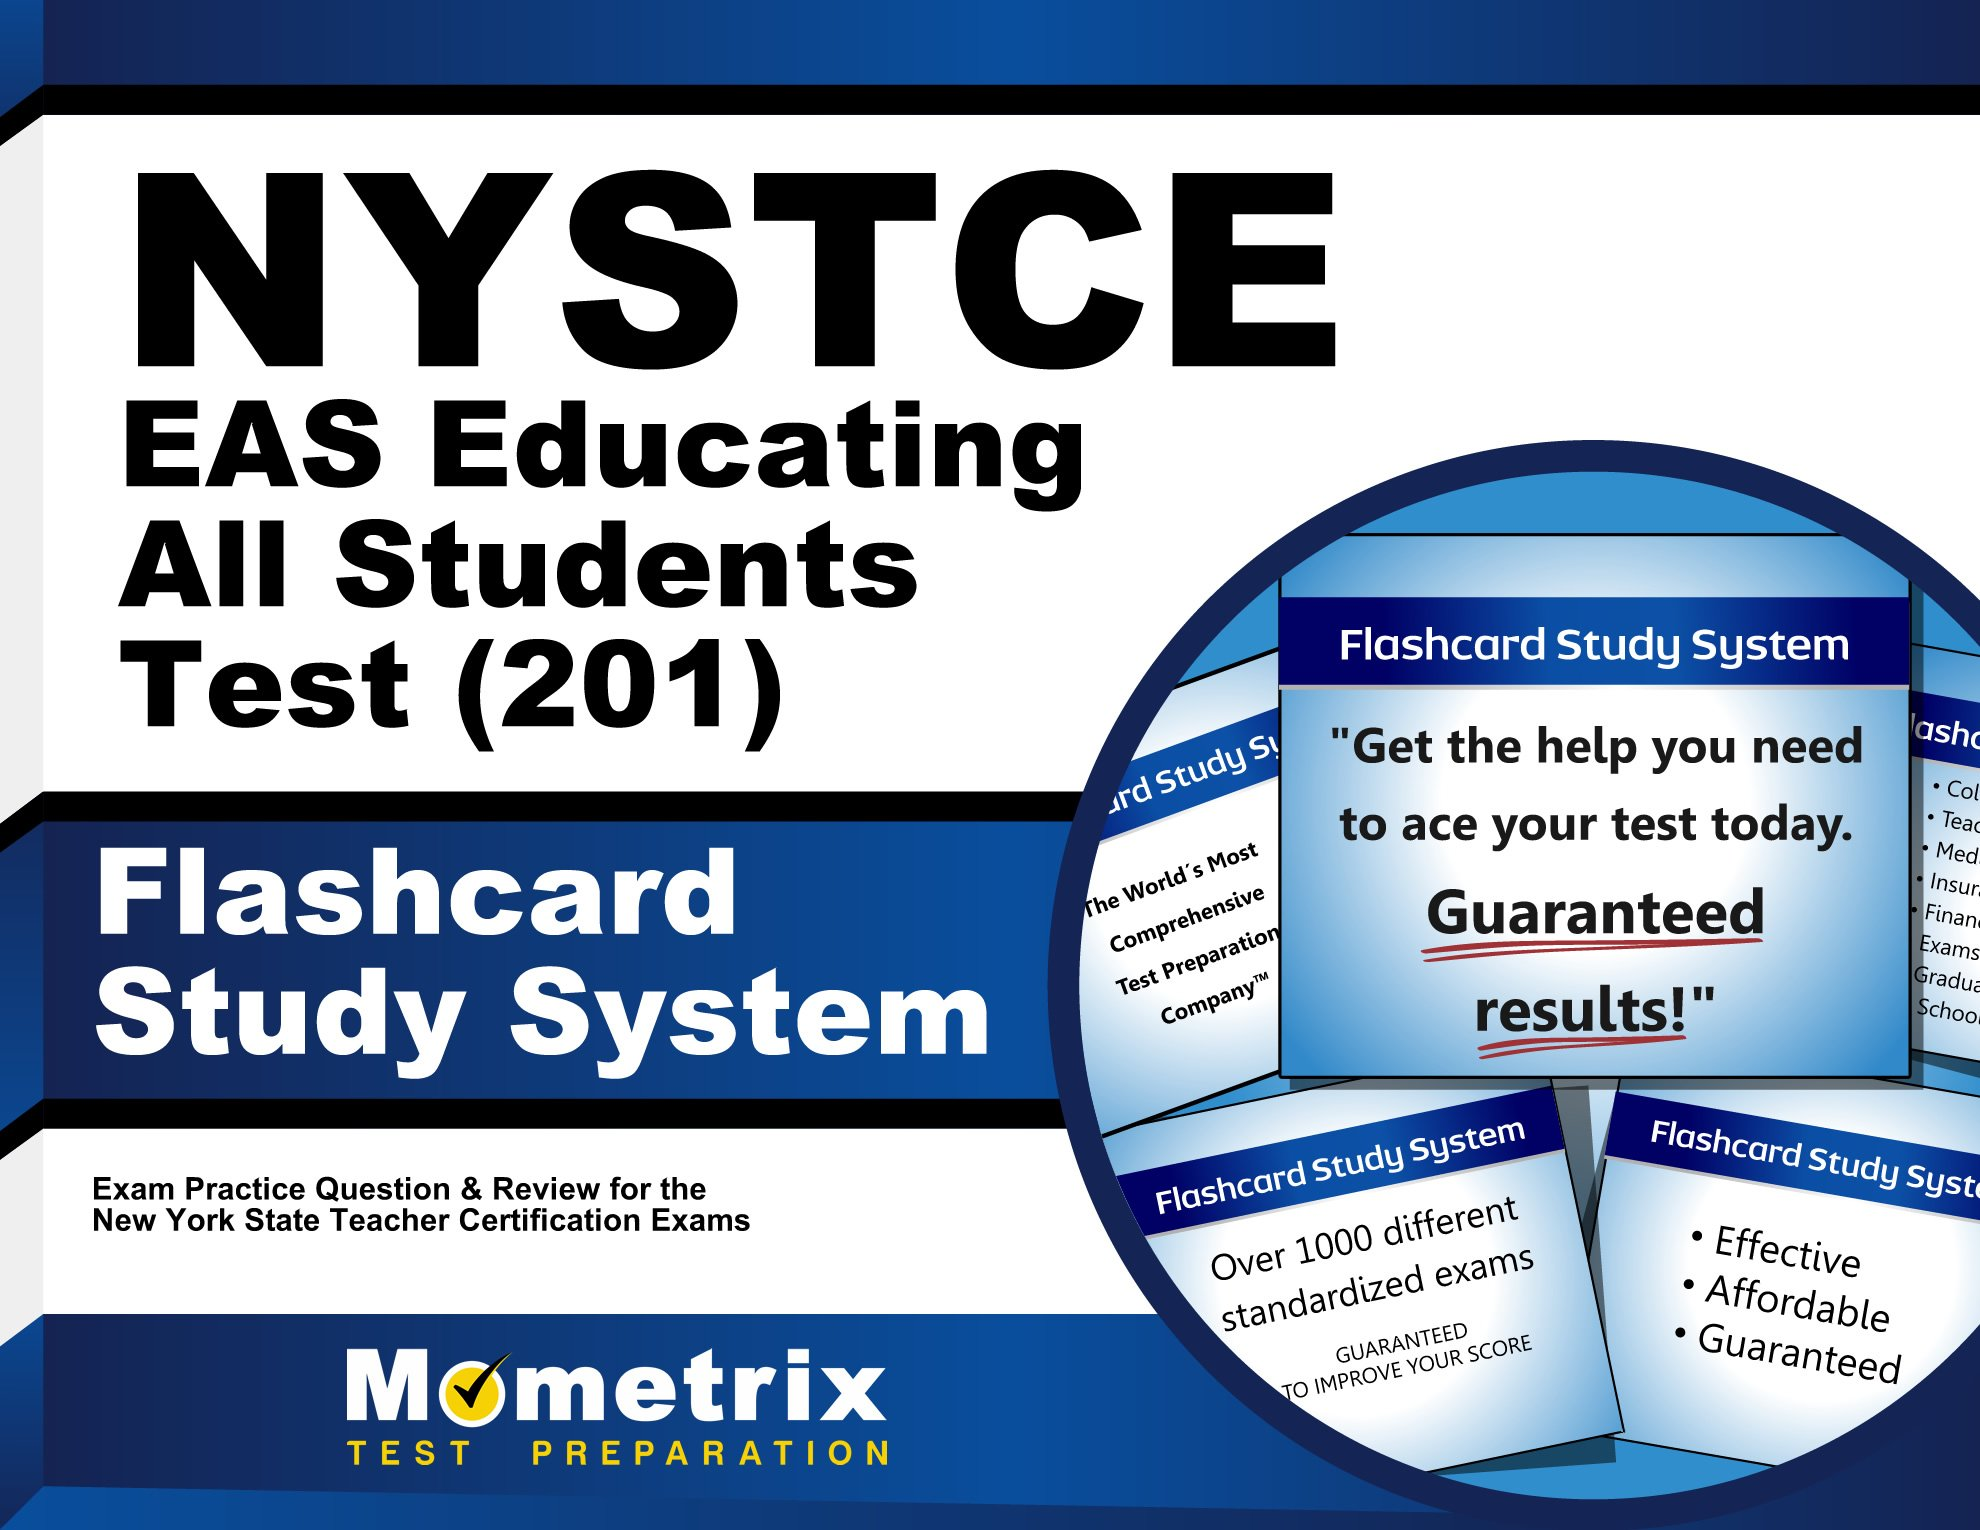 Nystce eas educating all students test 201 flashcard study nystce eas educating all students test 201 flashcard study system nystce exam practice questions review for the new york state teacher certification 1betcityfo Image collections